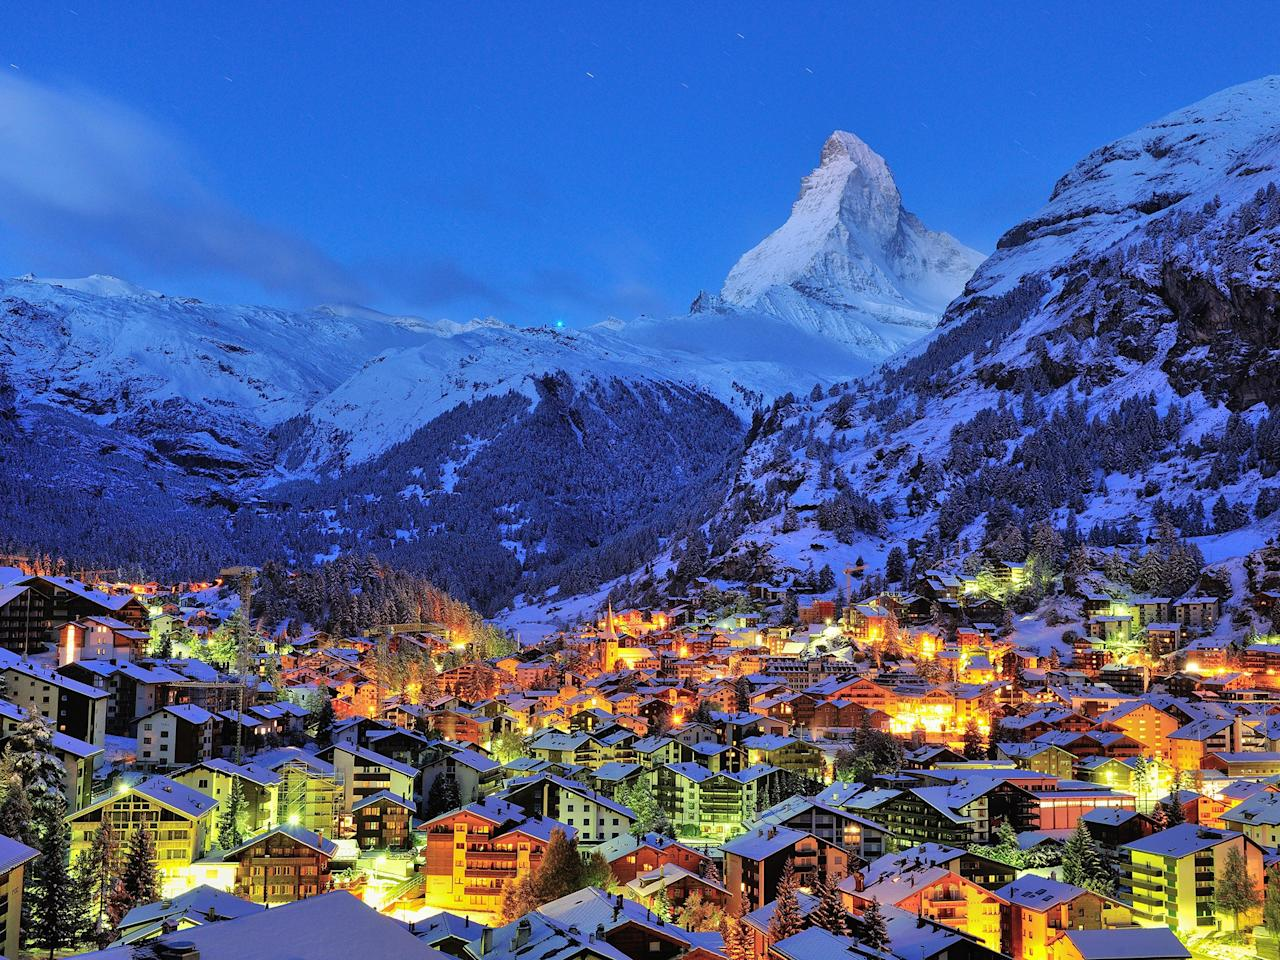 """<p>Experience classic Switzerland at the foot of the country's iconic Matterhorn mountain, which soars 14,692 feet above sea level in a stunning, pyramid shape. Found in Valais, just six miles from the Theodul Pass, which borders Italy, Zermatt is never short of fresh powder, avid skiers, and views of some of the highest peaks in the country. Shops, cafes, bars, and restaurants line the bustling main street in town, Bahnhofstrasse, where you can partake in après-ski as it was meant to be enjoyed: warm, cozy, and with plenty of apple strudel.</p> <p><strong>Stats:</strong> Priced from around $82, a day pass to Zermatt will have you zooming down your pick of 147 different runs. With 54 lifts and 224 miles of powder, there's a little something for skiers of all abilities. Heli-skiing is also on offer, if that's more your style.</p> <p><strong>Where to eat and drink nearby:</strong> You won't go hungry at Zermatt. In addition to the nightlife along Bahnhofstrasse, local resorts offer some of the best dining options in the country. Sip espresso by the fire at <a href=""""http://www.cntraveler.com/hotels/switzerland/zermatt/the-omnia?mbid=synd_yahoo_rss"""" target=""""_blank"""">The Omnia</a>'s restaurant to defrost, enjoy traditional drinks and cocktails at the <a href=""""http://www.cntraveler.com/hotels/switzerland/gornergrat/grand-hotel-zermatterhof--zermatt?mbid=synd_yahoo_rss"""" target=""""_blank"""">Grand Hotel Zermatterhof</a>'s Star Bar, and refuel with some of the top alpine cuisine at Brasserie Lusi. Grand Hotel Zermatterhof even offers its very own cheese cafe.</p> <p><strong>Where to stay:</strong> Make yourself at home off the slopes at The Omnia, the sprawling Grand Hotel Zermatterhof, the splurge-worthy <a href=""""https://www.montcervinpalace.ch/en"""" target=""""_blank"""">Mont Cervin Palace</a>, or cozy <a href=""""https://www.cntraveler.com/hotels/switzerland/gornergrat/backstage?mbid=synd_yahoo_rss"""" target=""""_blank"""">Backstage</a>, just steps from the Glacier Express train, which connects S"""